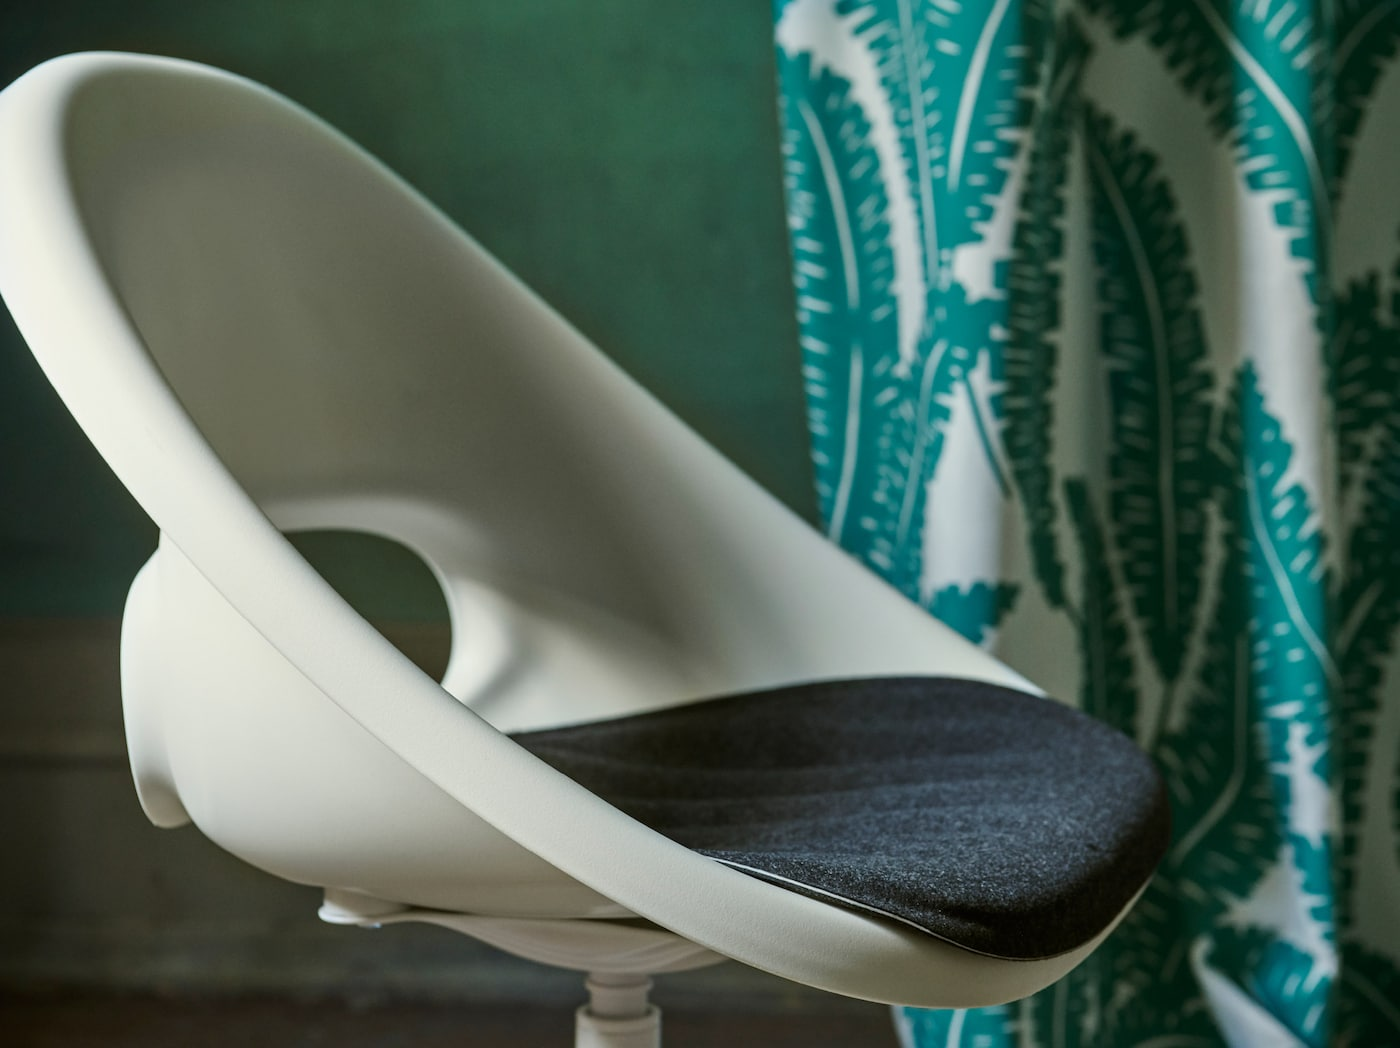 A close-up of the white LOBERGET/BLYSKÄR swivel chair with a rounded retro design placed in a green room.